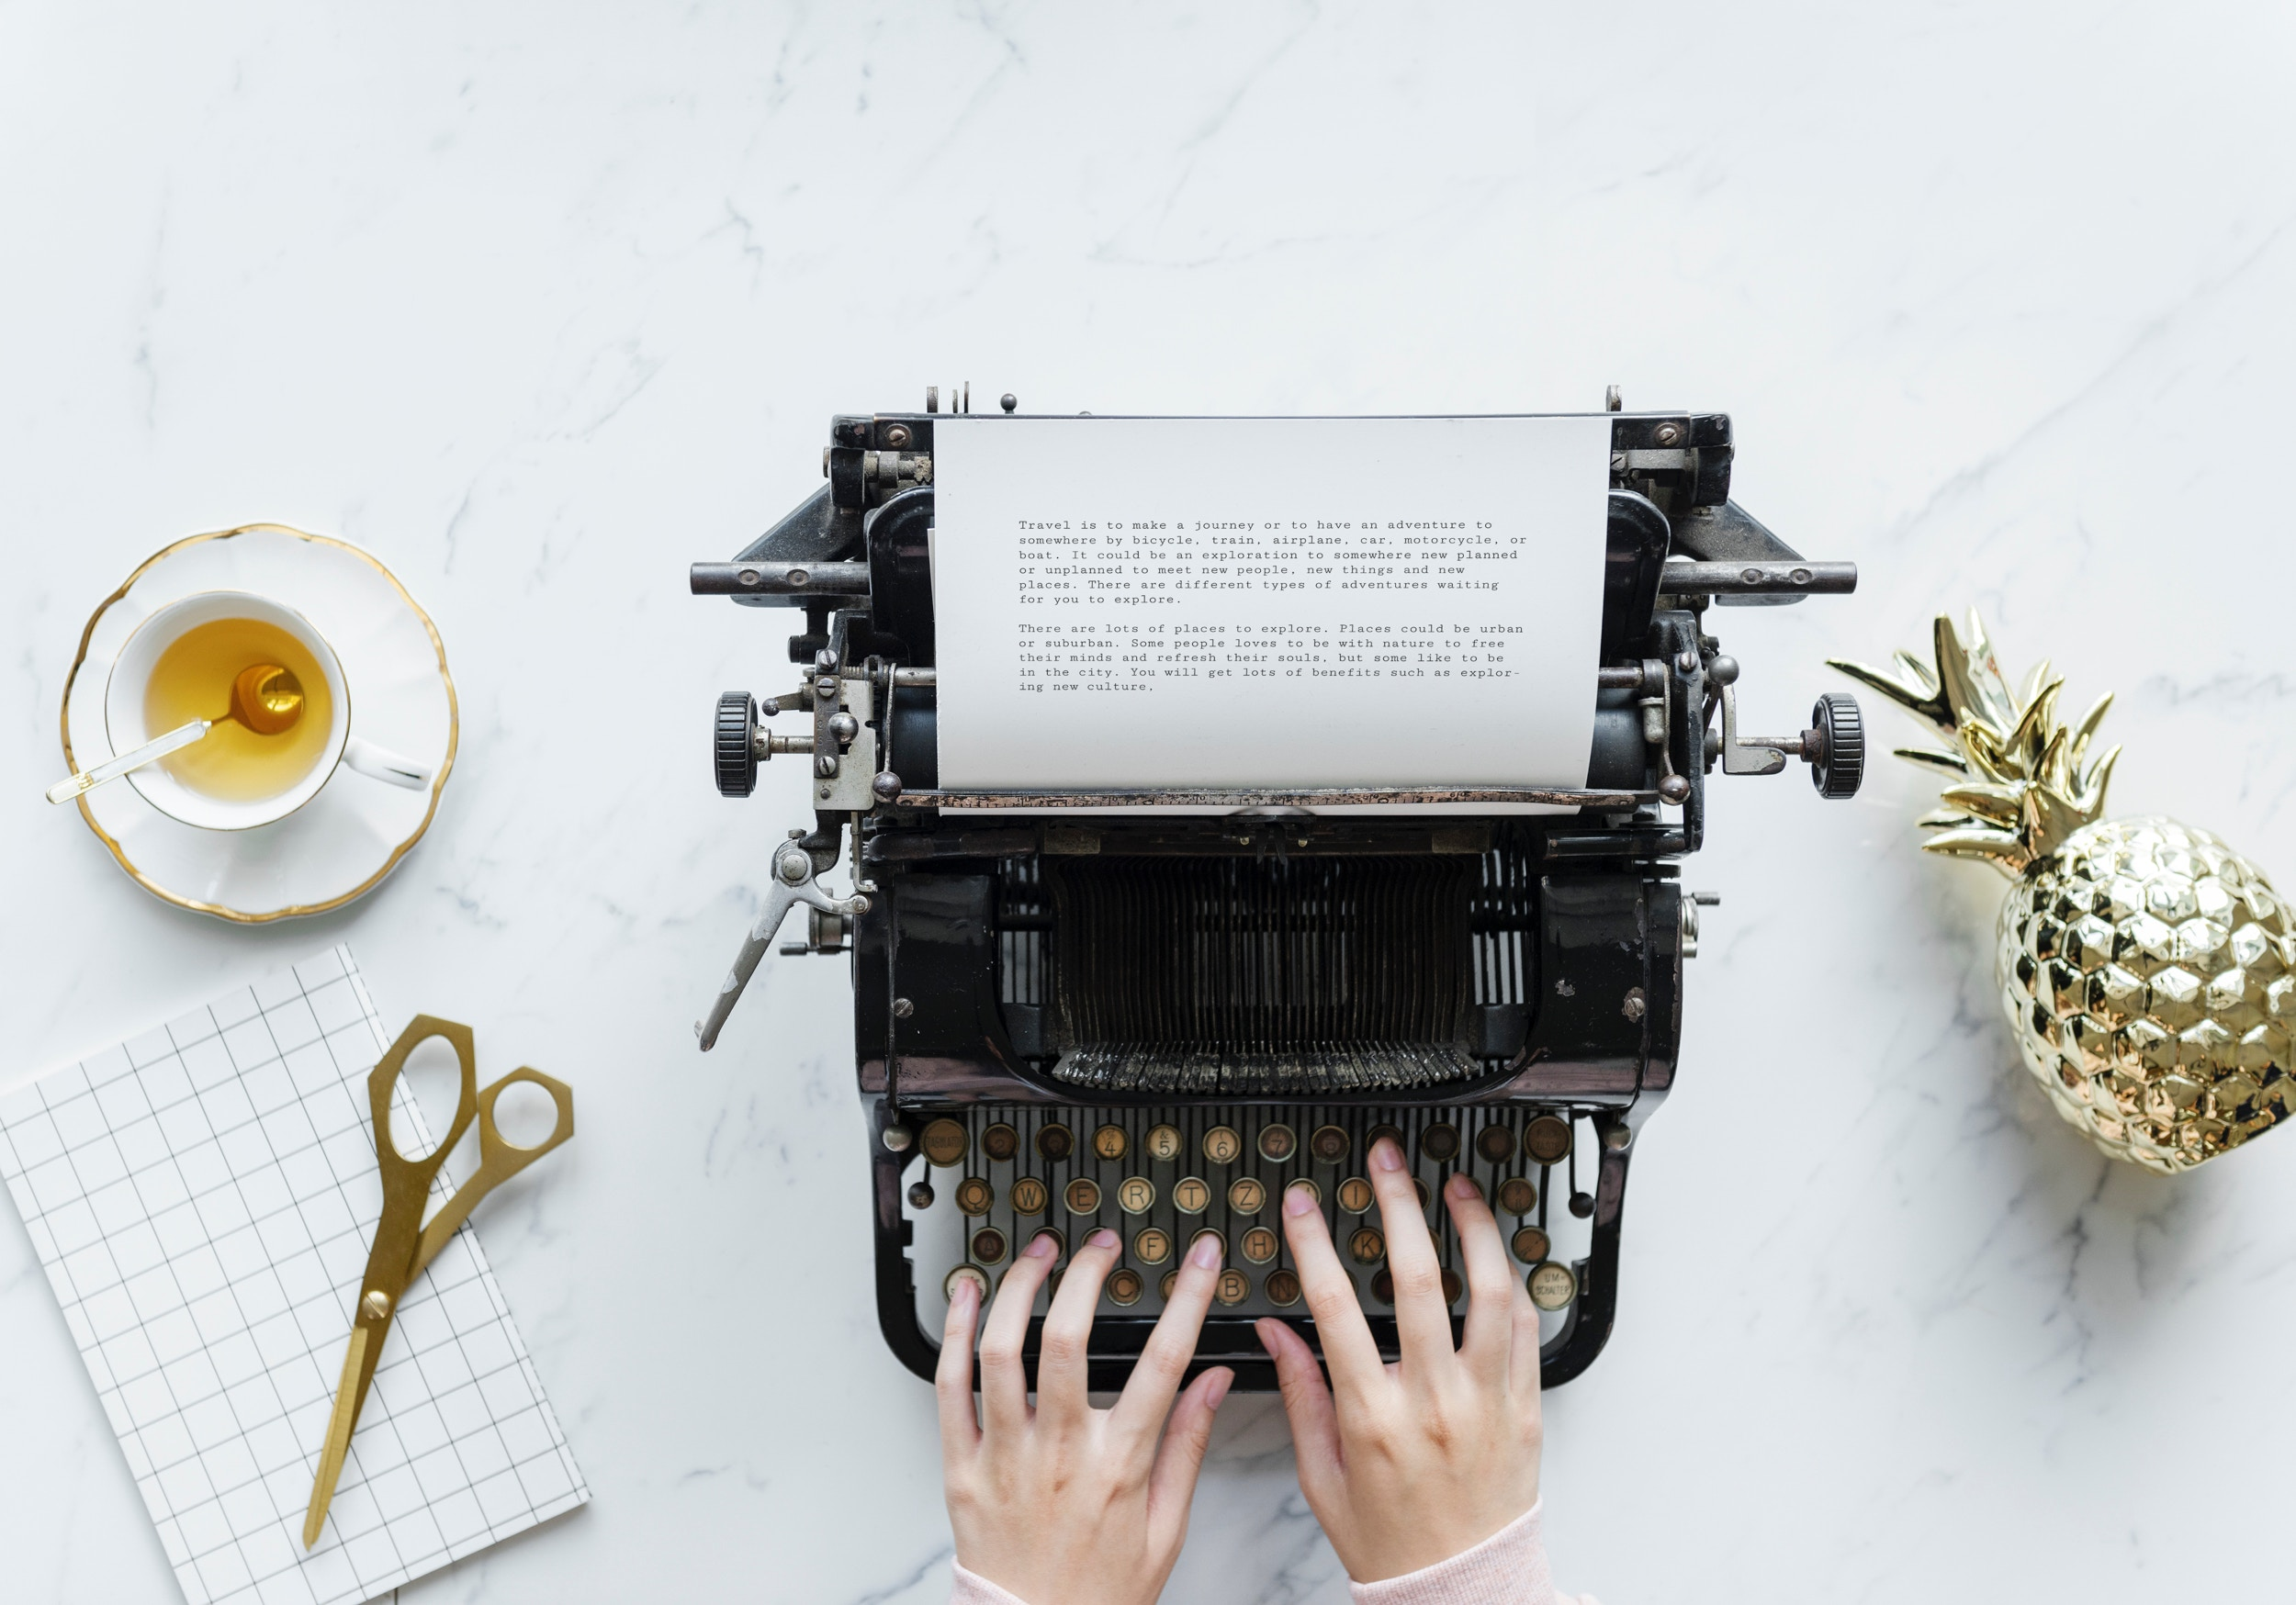 Woman's hands typing on a typewriter. Desk contains a pair of scissors to the left and a golden metal pineapple to the right. Photo by rawpixel on Unsplash